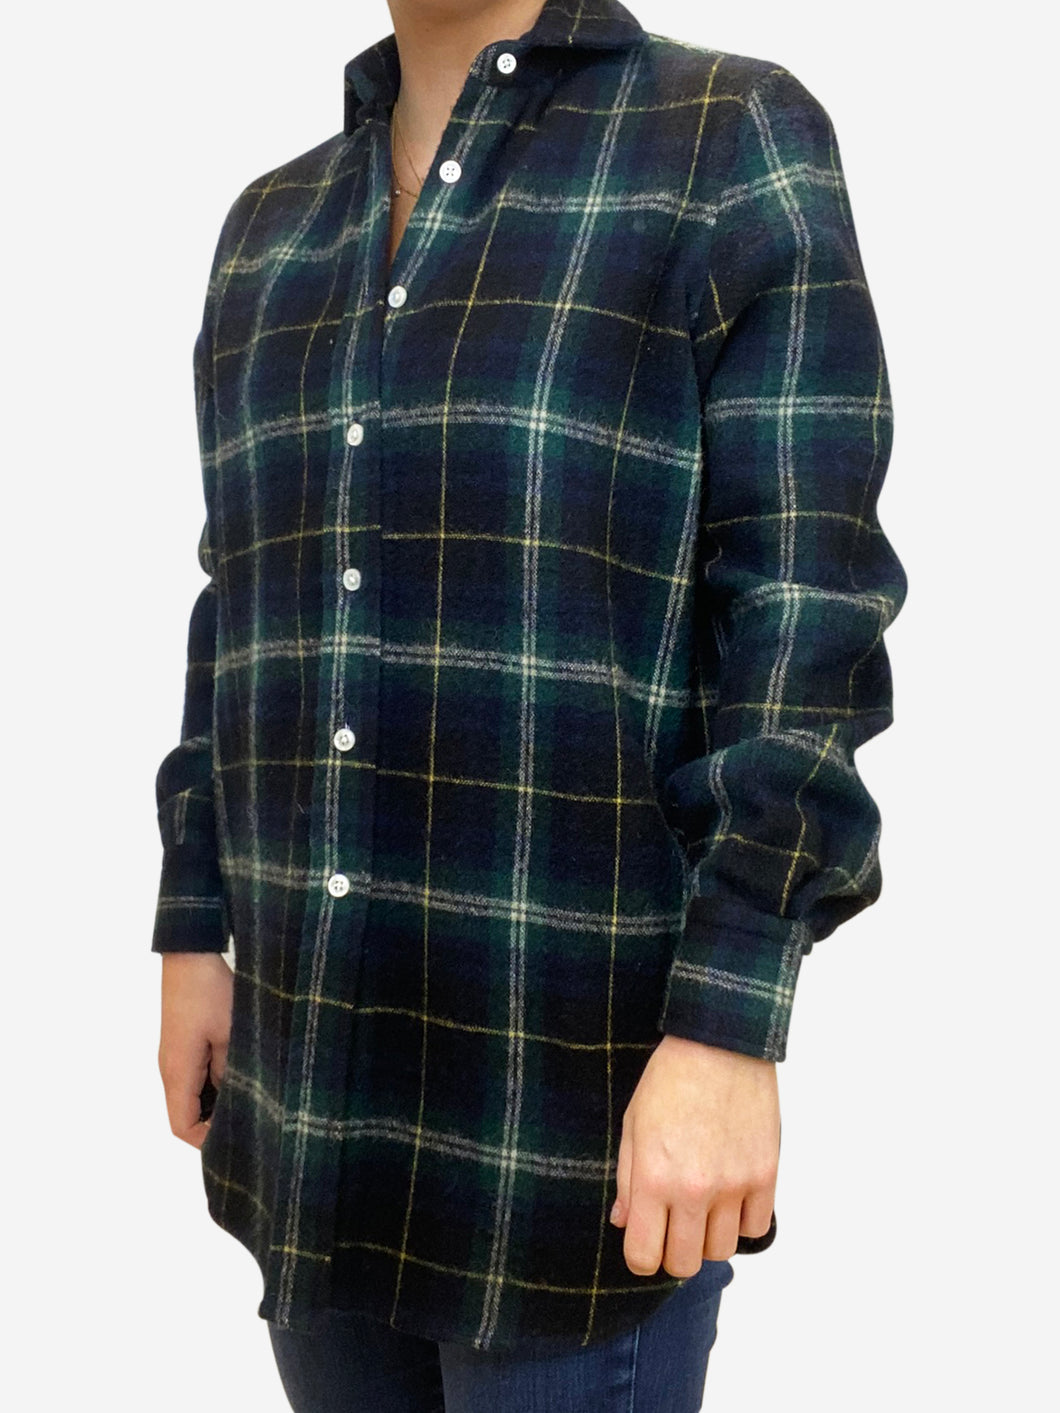 Navy & green plaid shirt - size IT 40